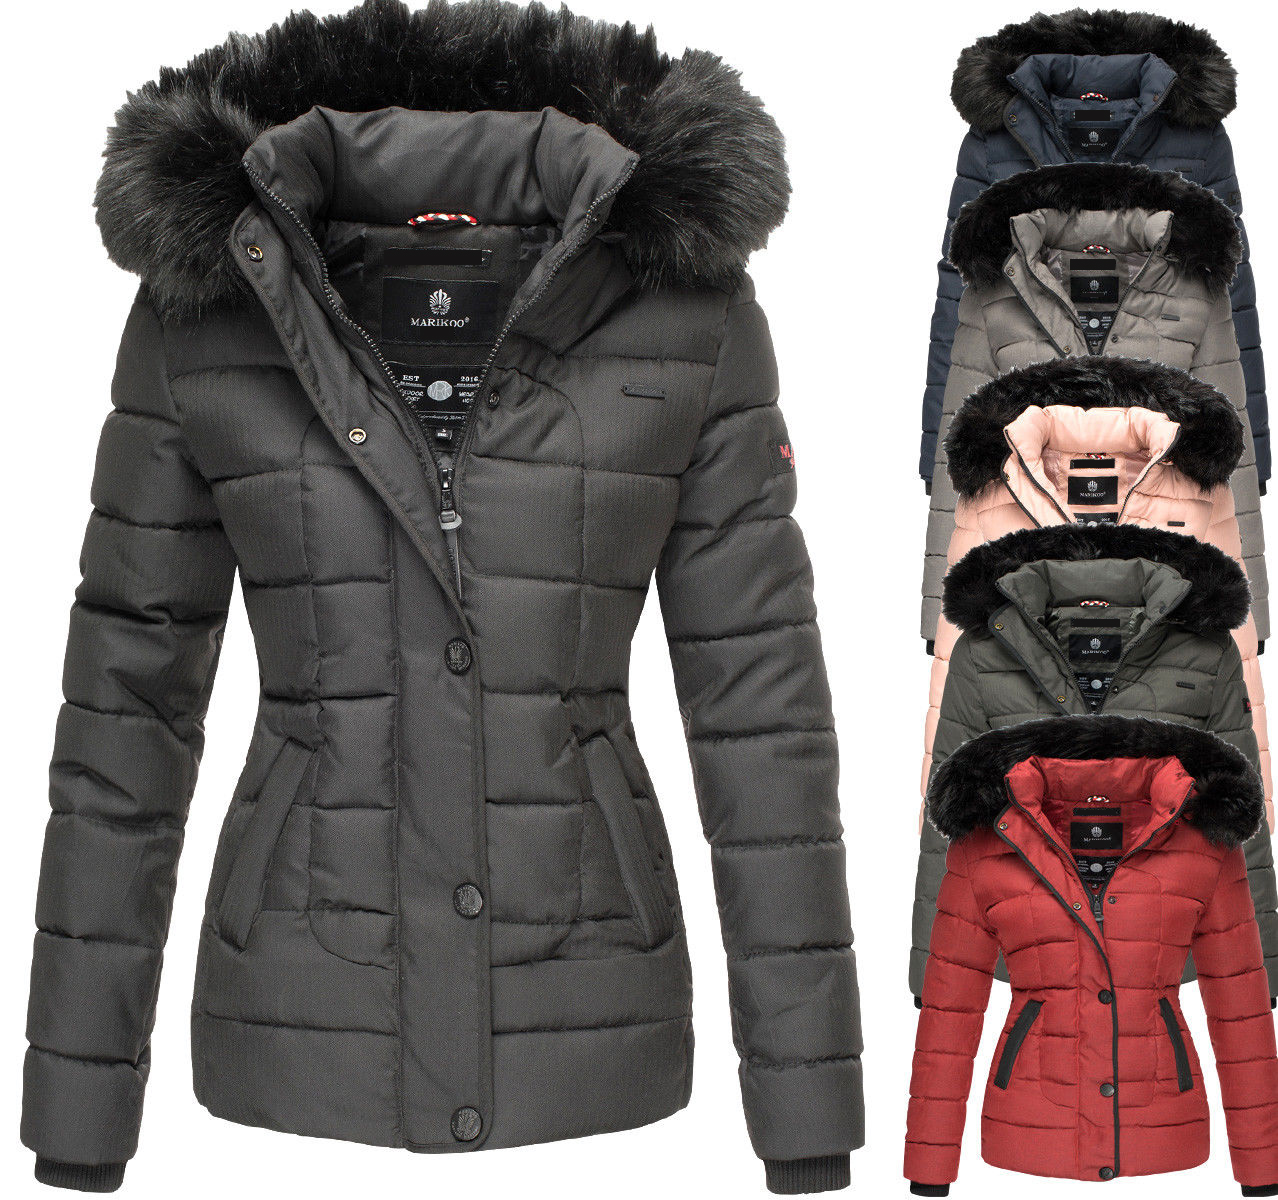 Marikoo Unique Damen Winter Stepp Jacke Parka Kurz Mantel Kunstpelz Kapuze